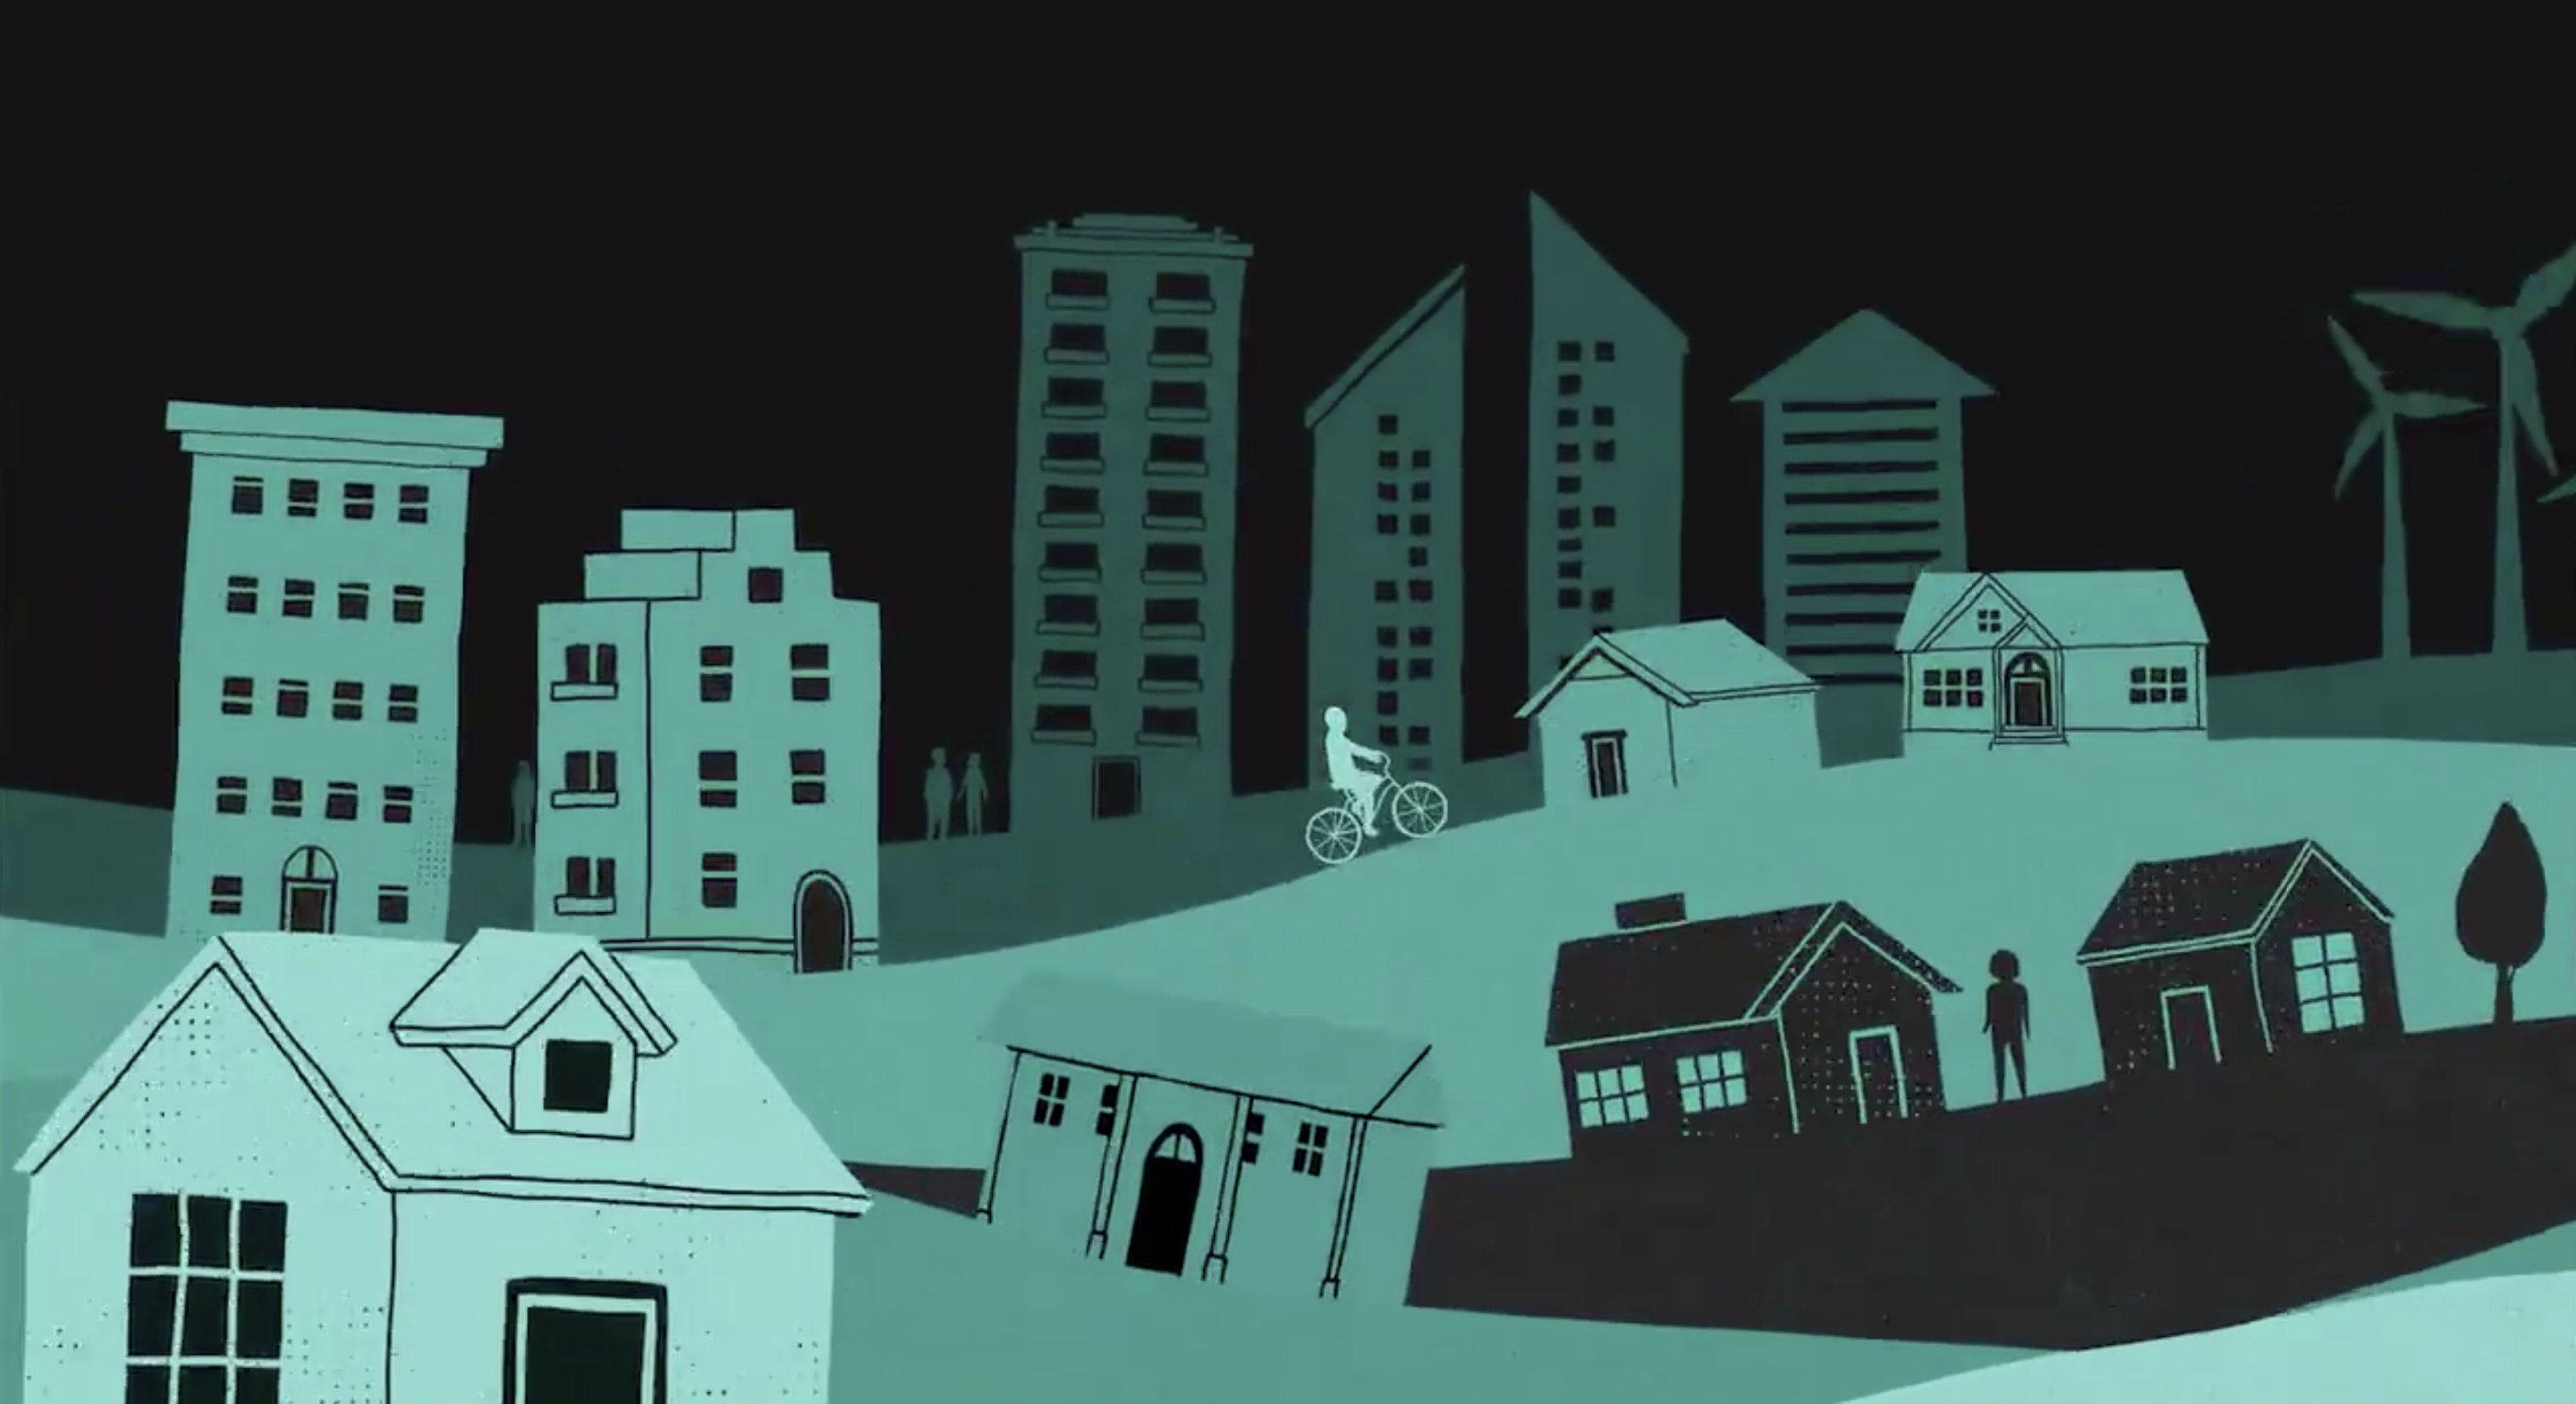 illustration of person riding a bike through a neighborhood of high-rises and single family homes